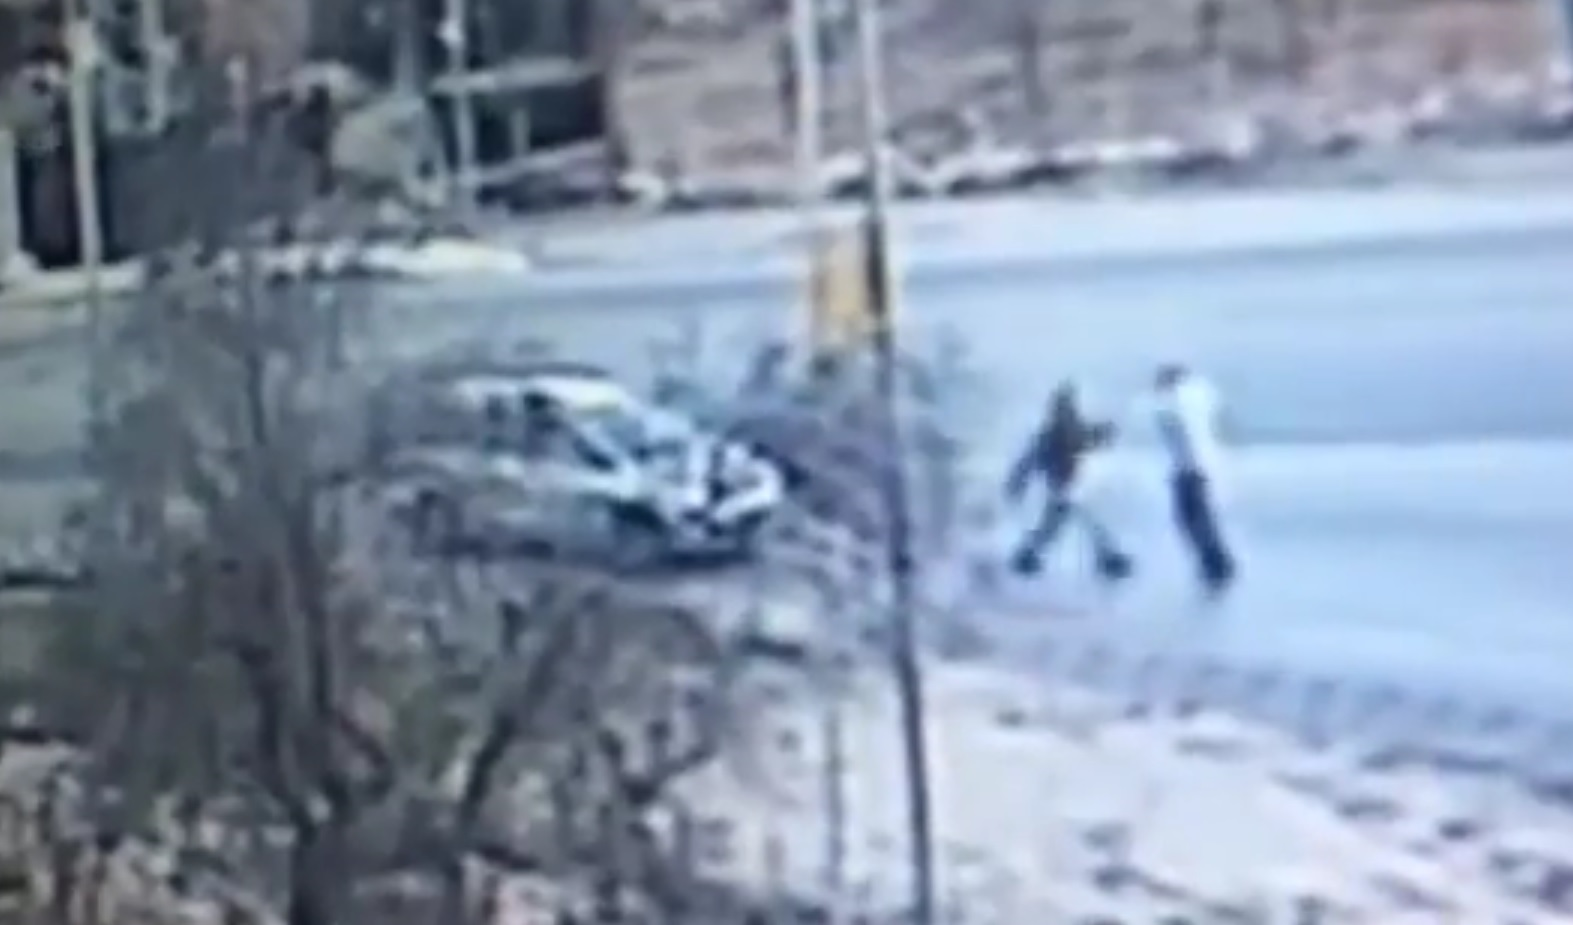 Israel: Shocking Video Shows Palestinian Killing Woman in Gush Etzion Stabbing Attack